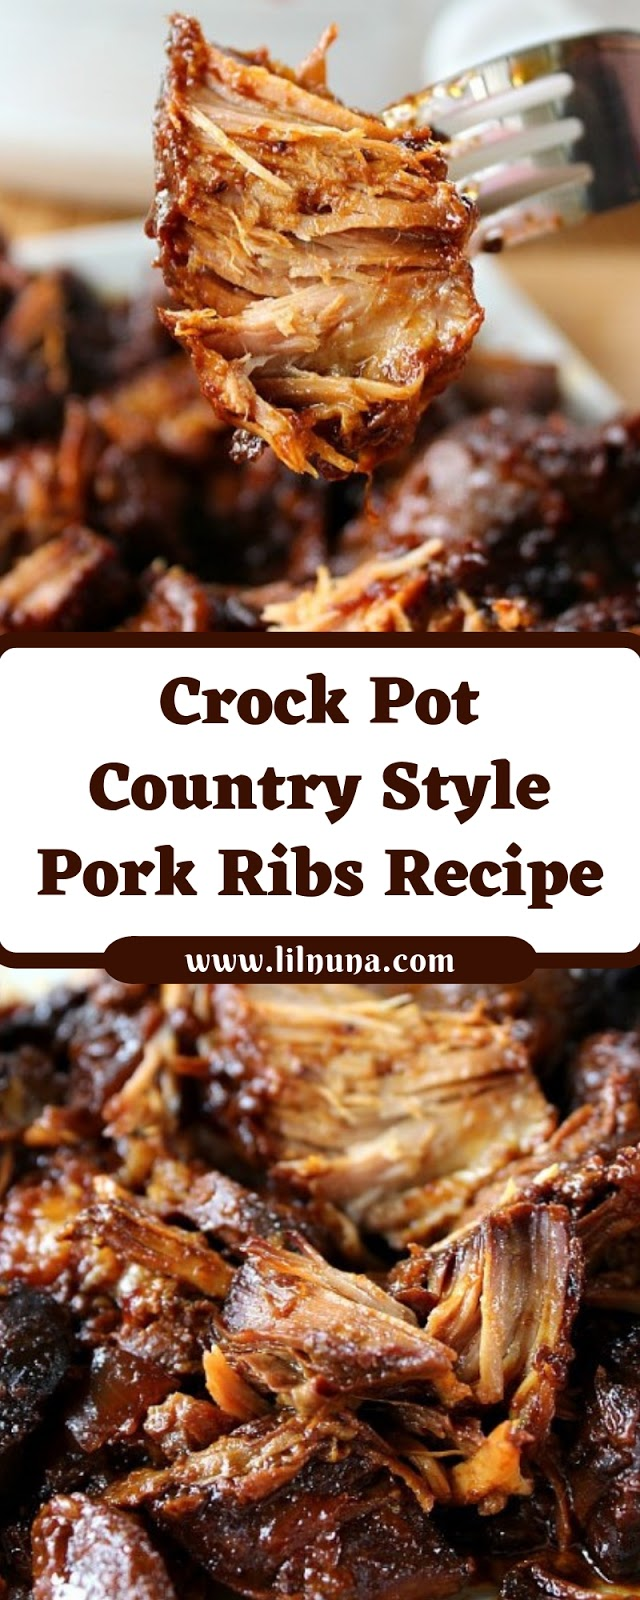 Crock Pot Country Style Pork Ribs Recipe